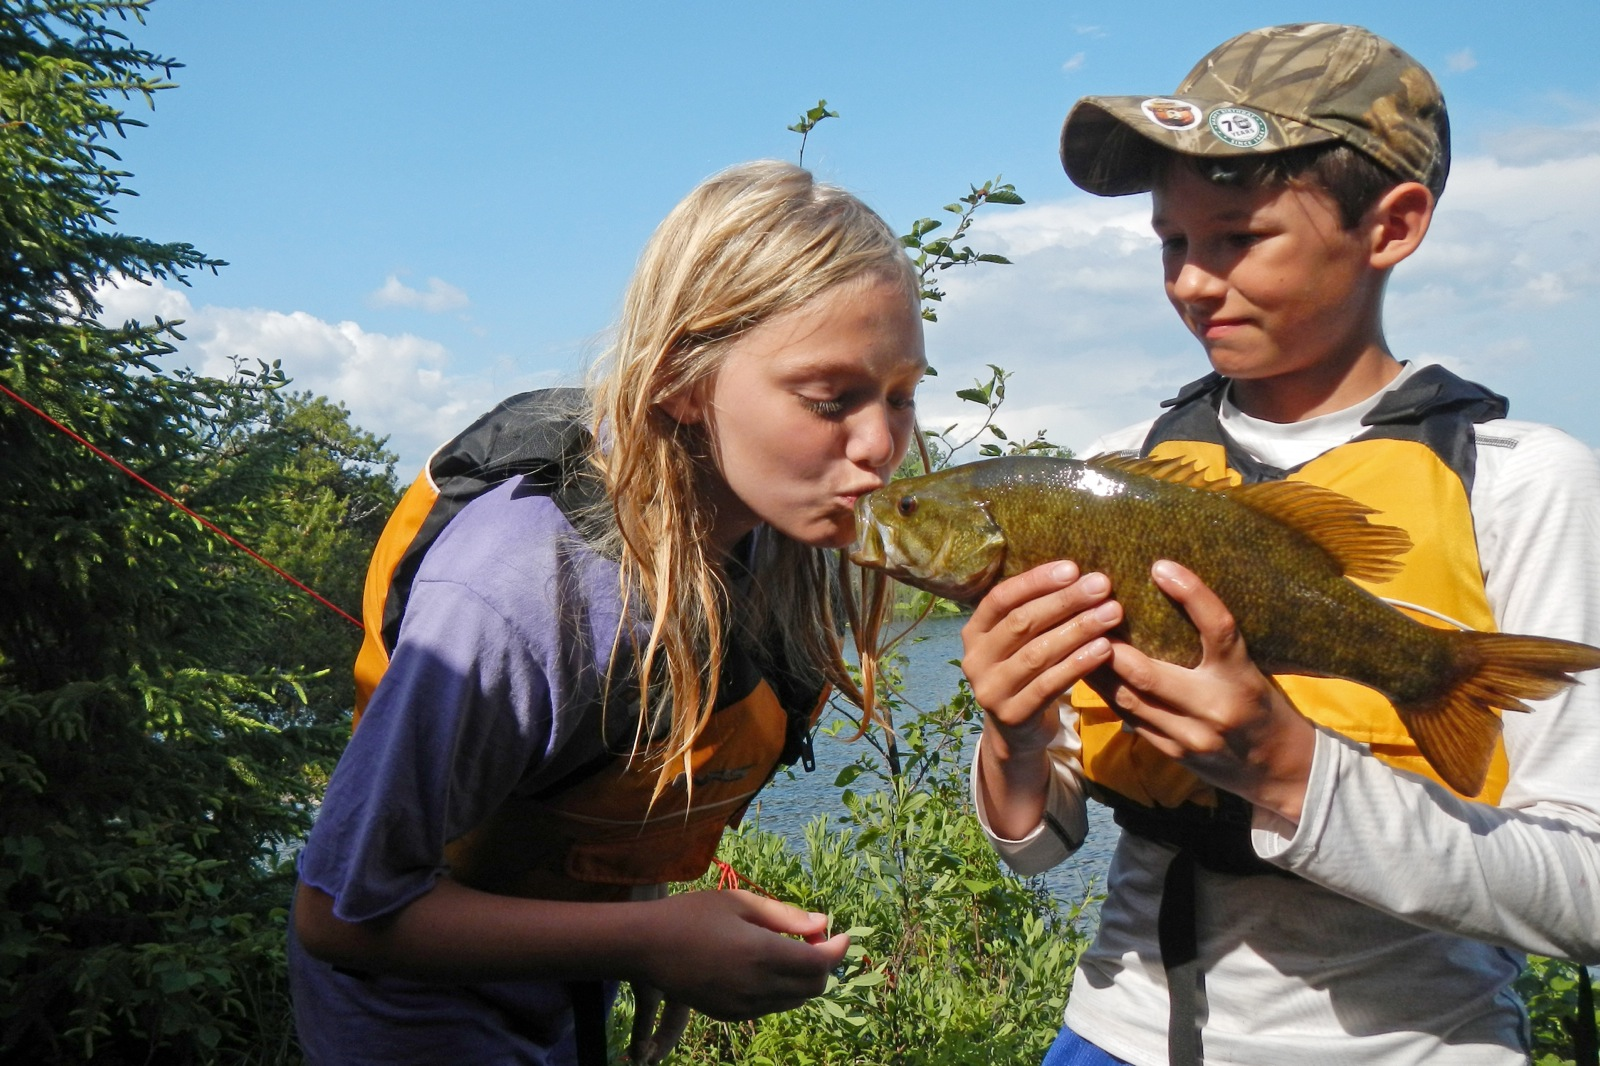 a boy holding a fish while a girl kisses the fish by the lake